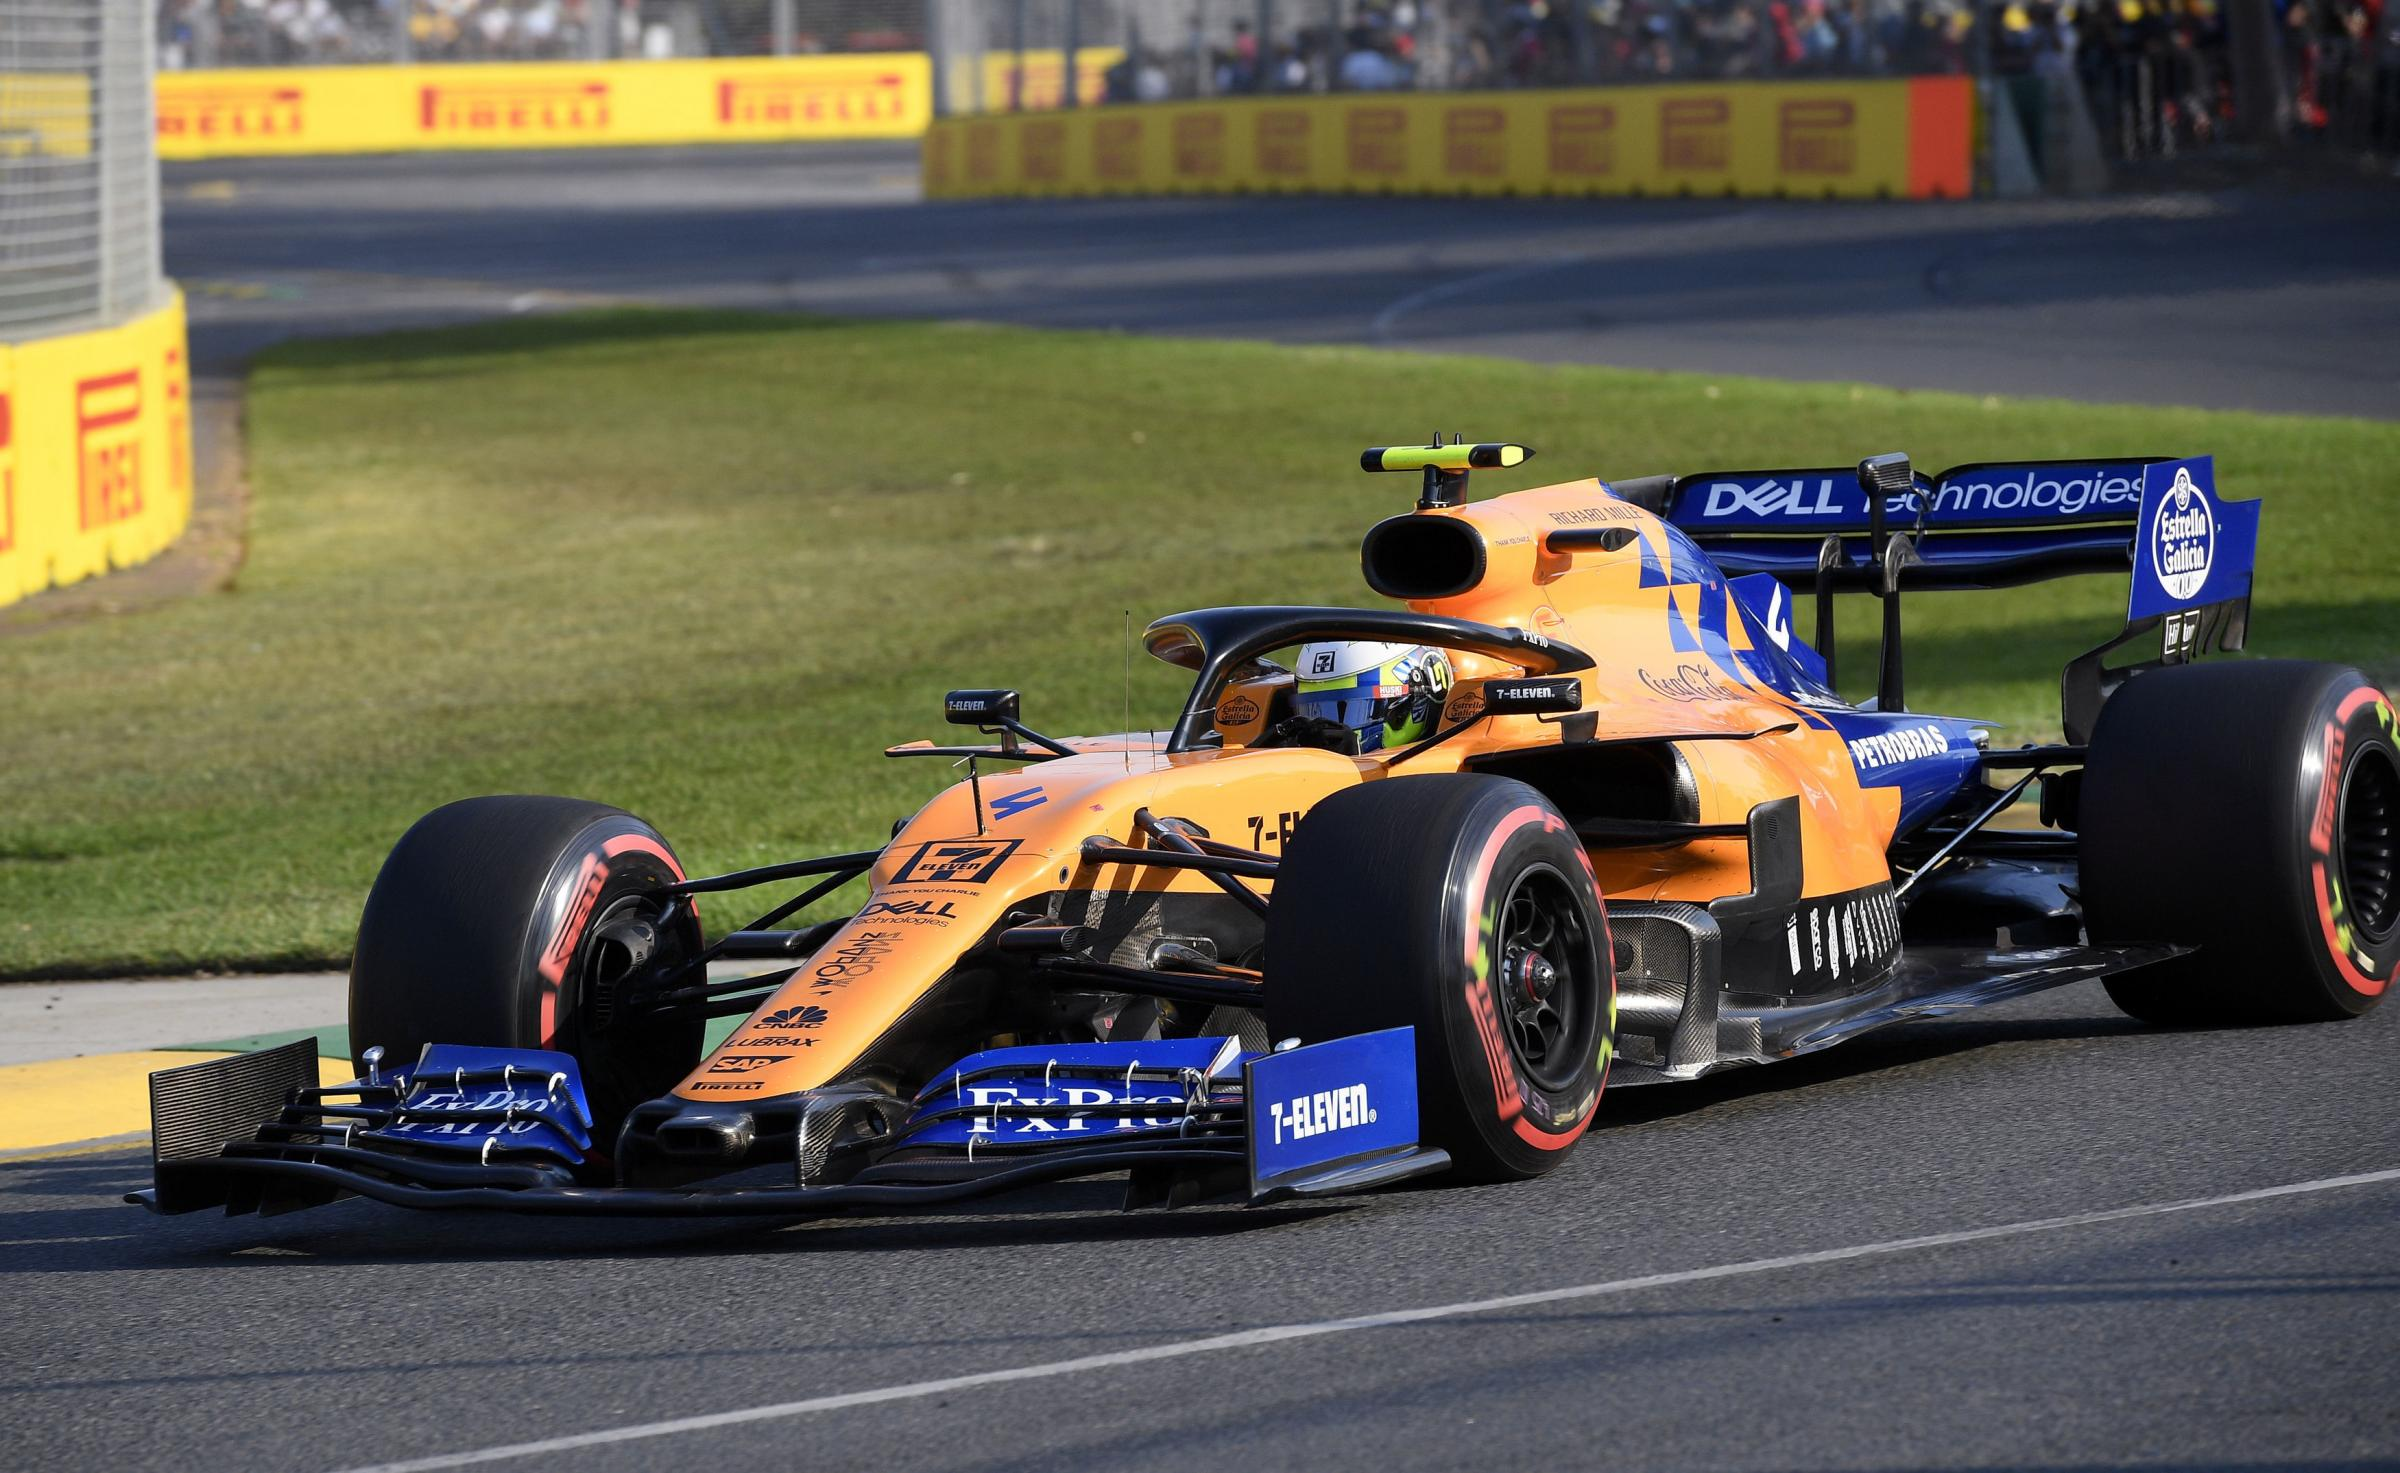 McLaren driver Lando Norris of Britain goes through a corner during qualifying for the Australian Grand Prix in Melbourne, Australia, Saturday, March 16, 2019. The first race of the year is Sunday. (AP Photo/Andy Brownbill).